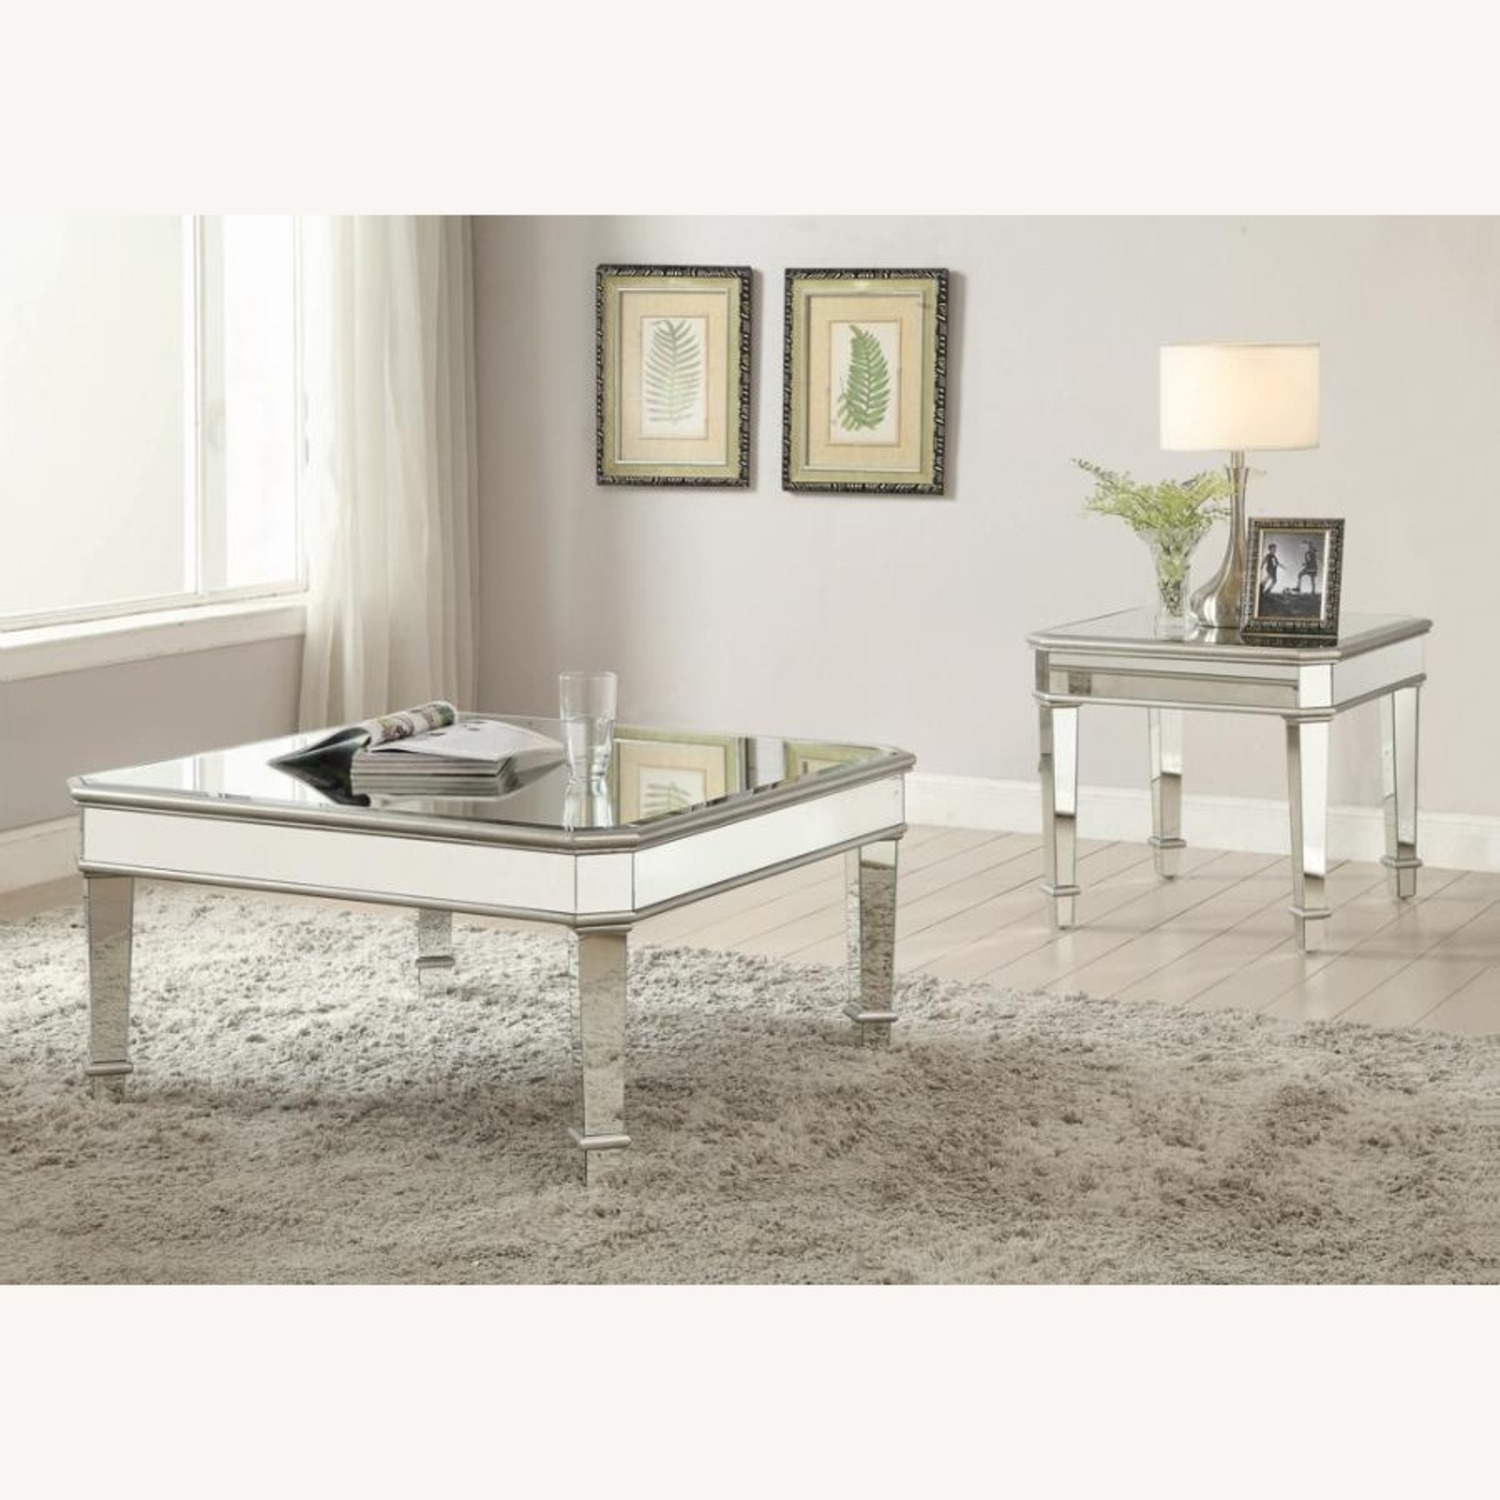 Coffee Table In Silver W/ Mirror Lined Surfaces - image-2